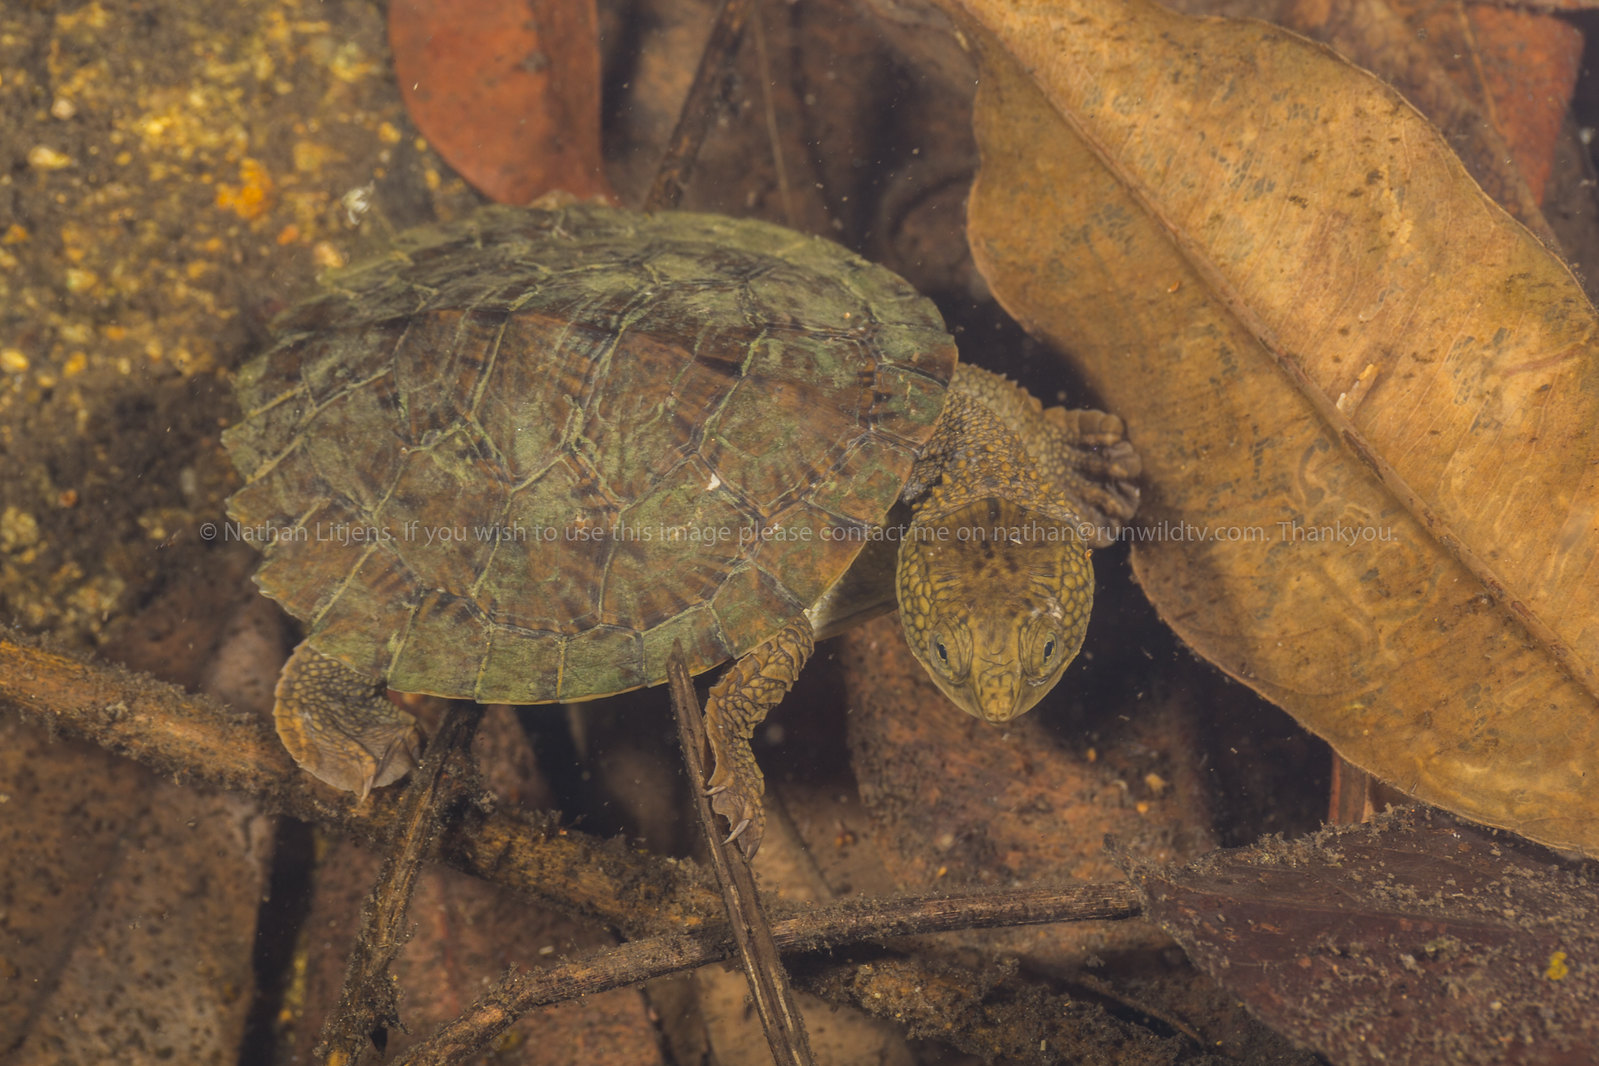 Saw shelled turtle (Wollumbinia latisternum)